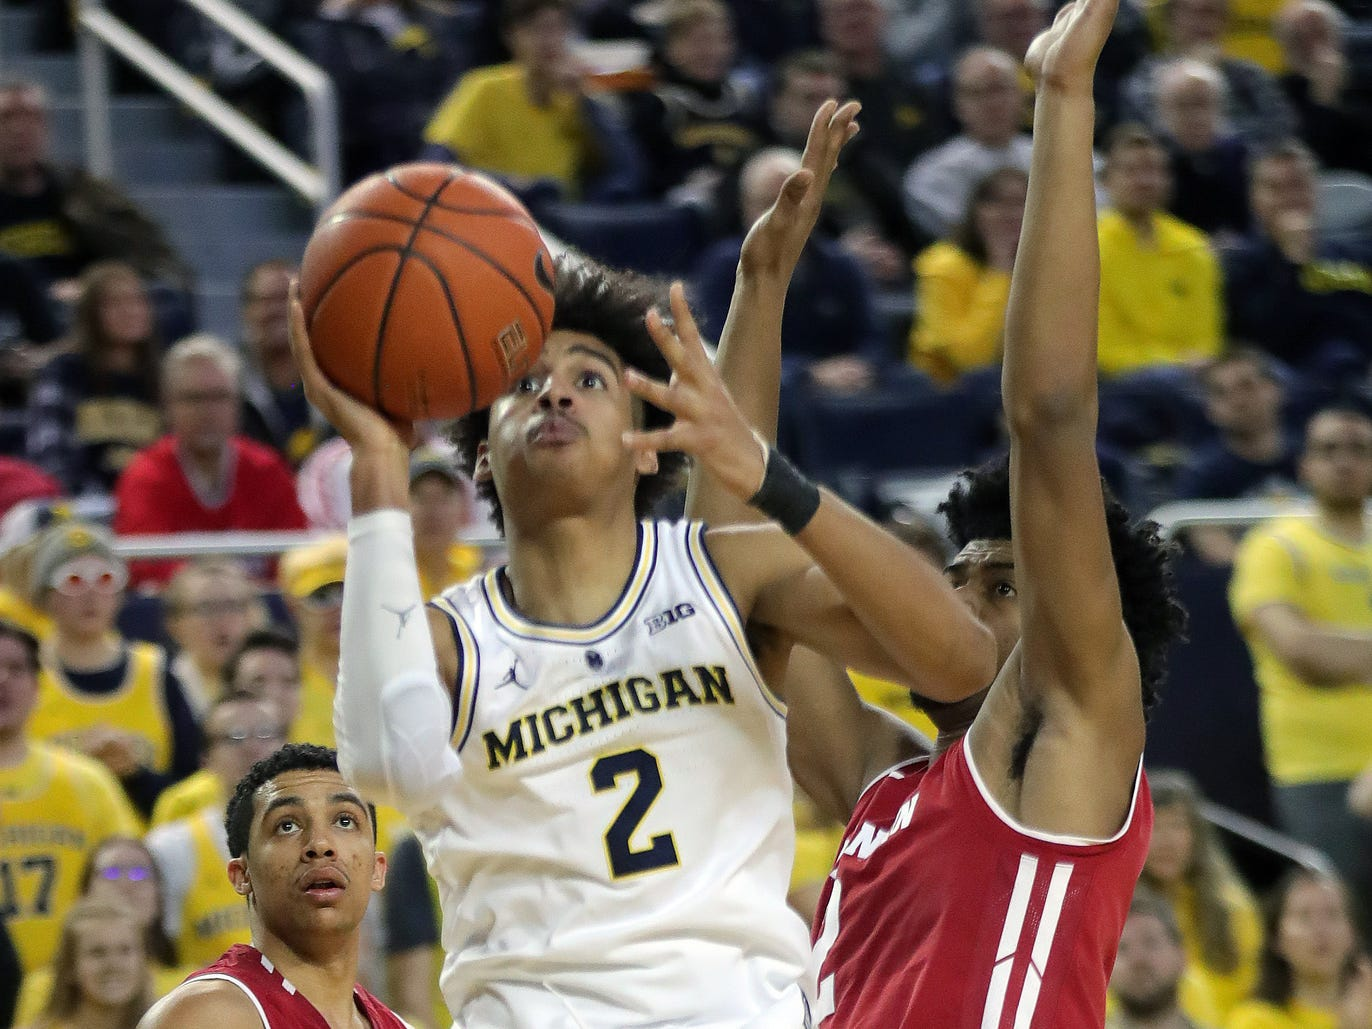 Michigan guard Jordan Poole scores against Wisconsin guard Khalil Iverson during the second half Saturday, Feb. 9, 2019 at Crisler Center.